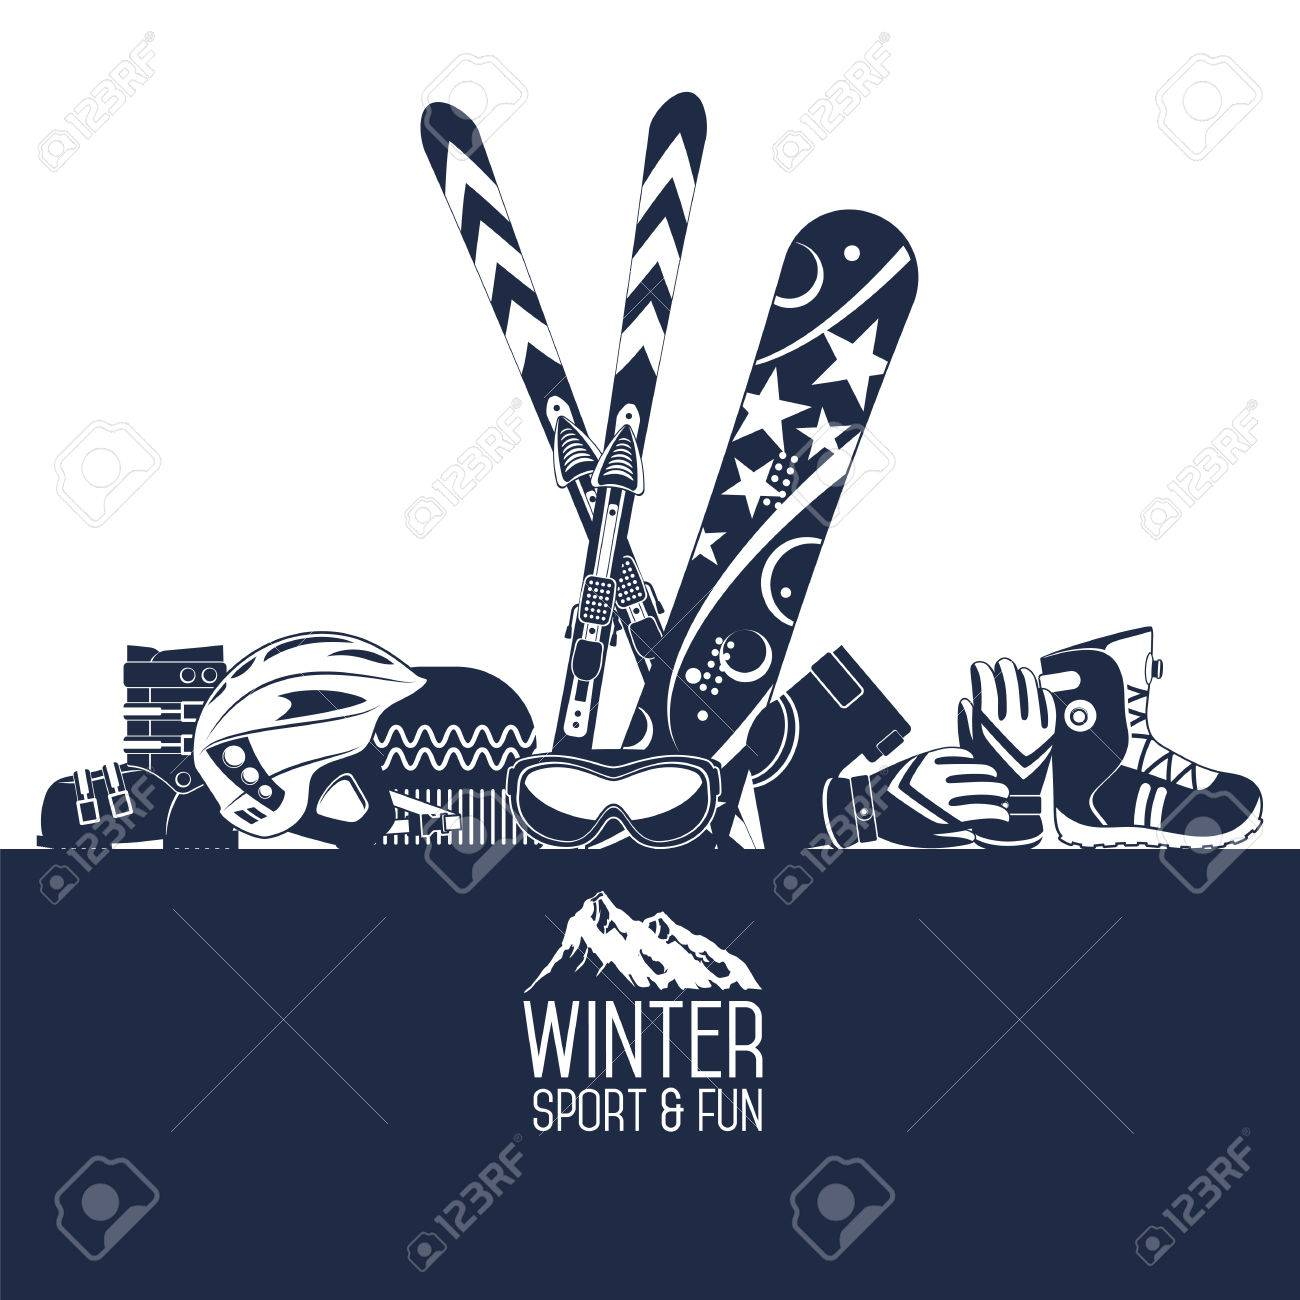 Ski Equipment Or Ski Kit. Extreme Winter Sports. Ski, Ski Camera ... for Camera Equipment Clipart  113cpg